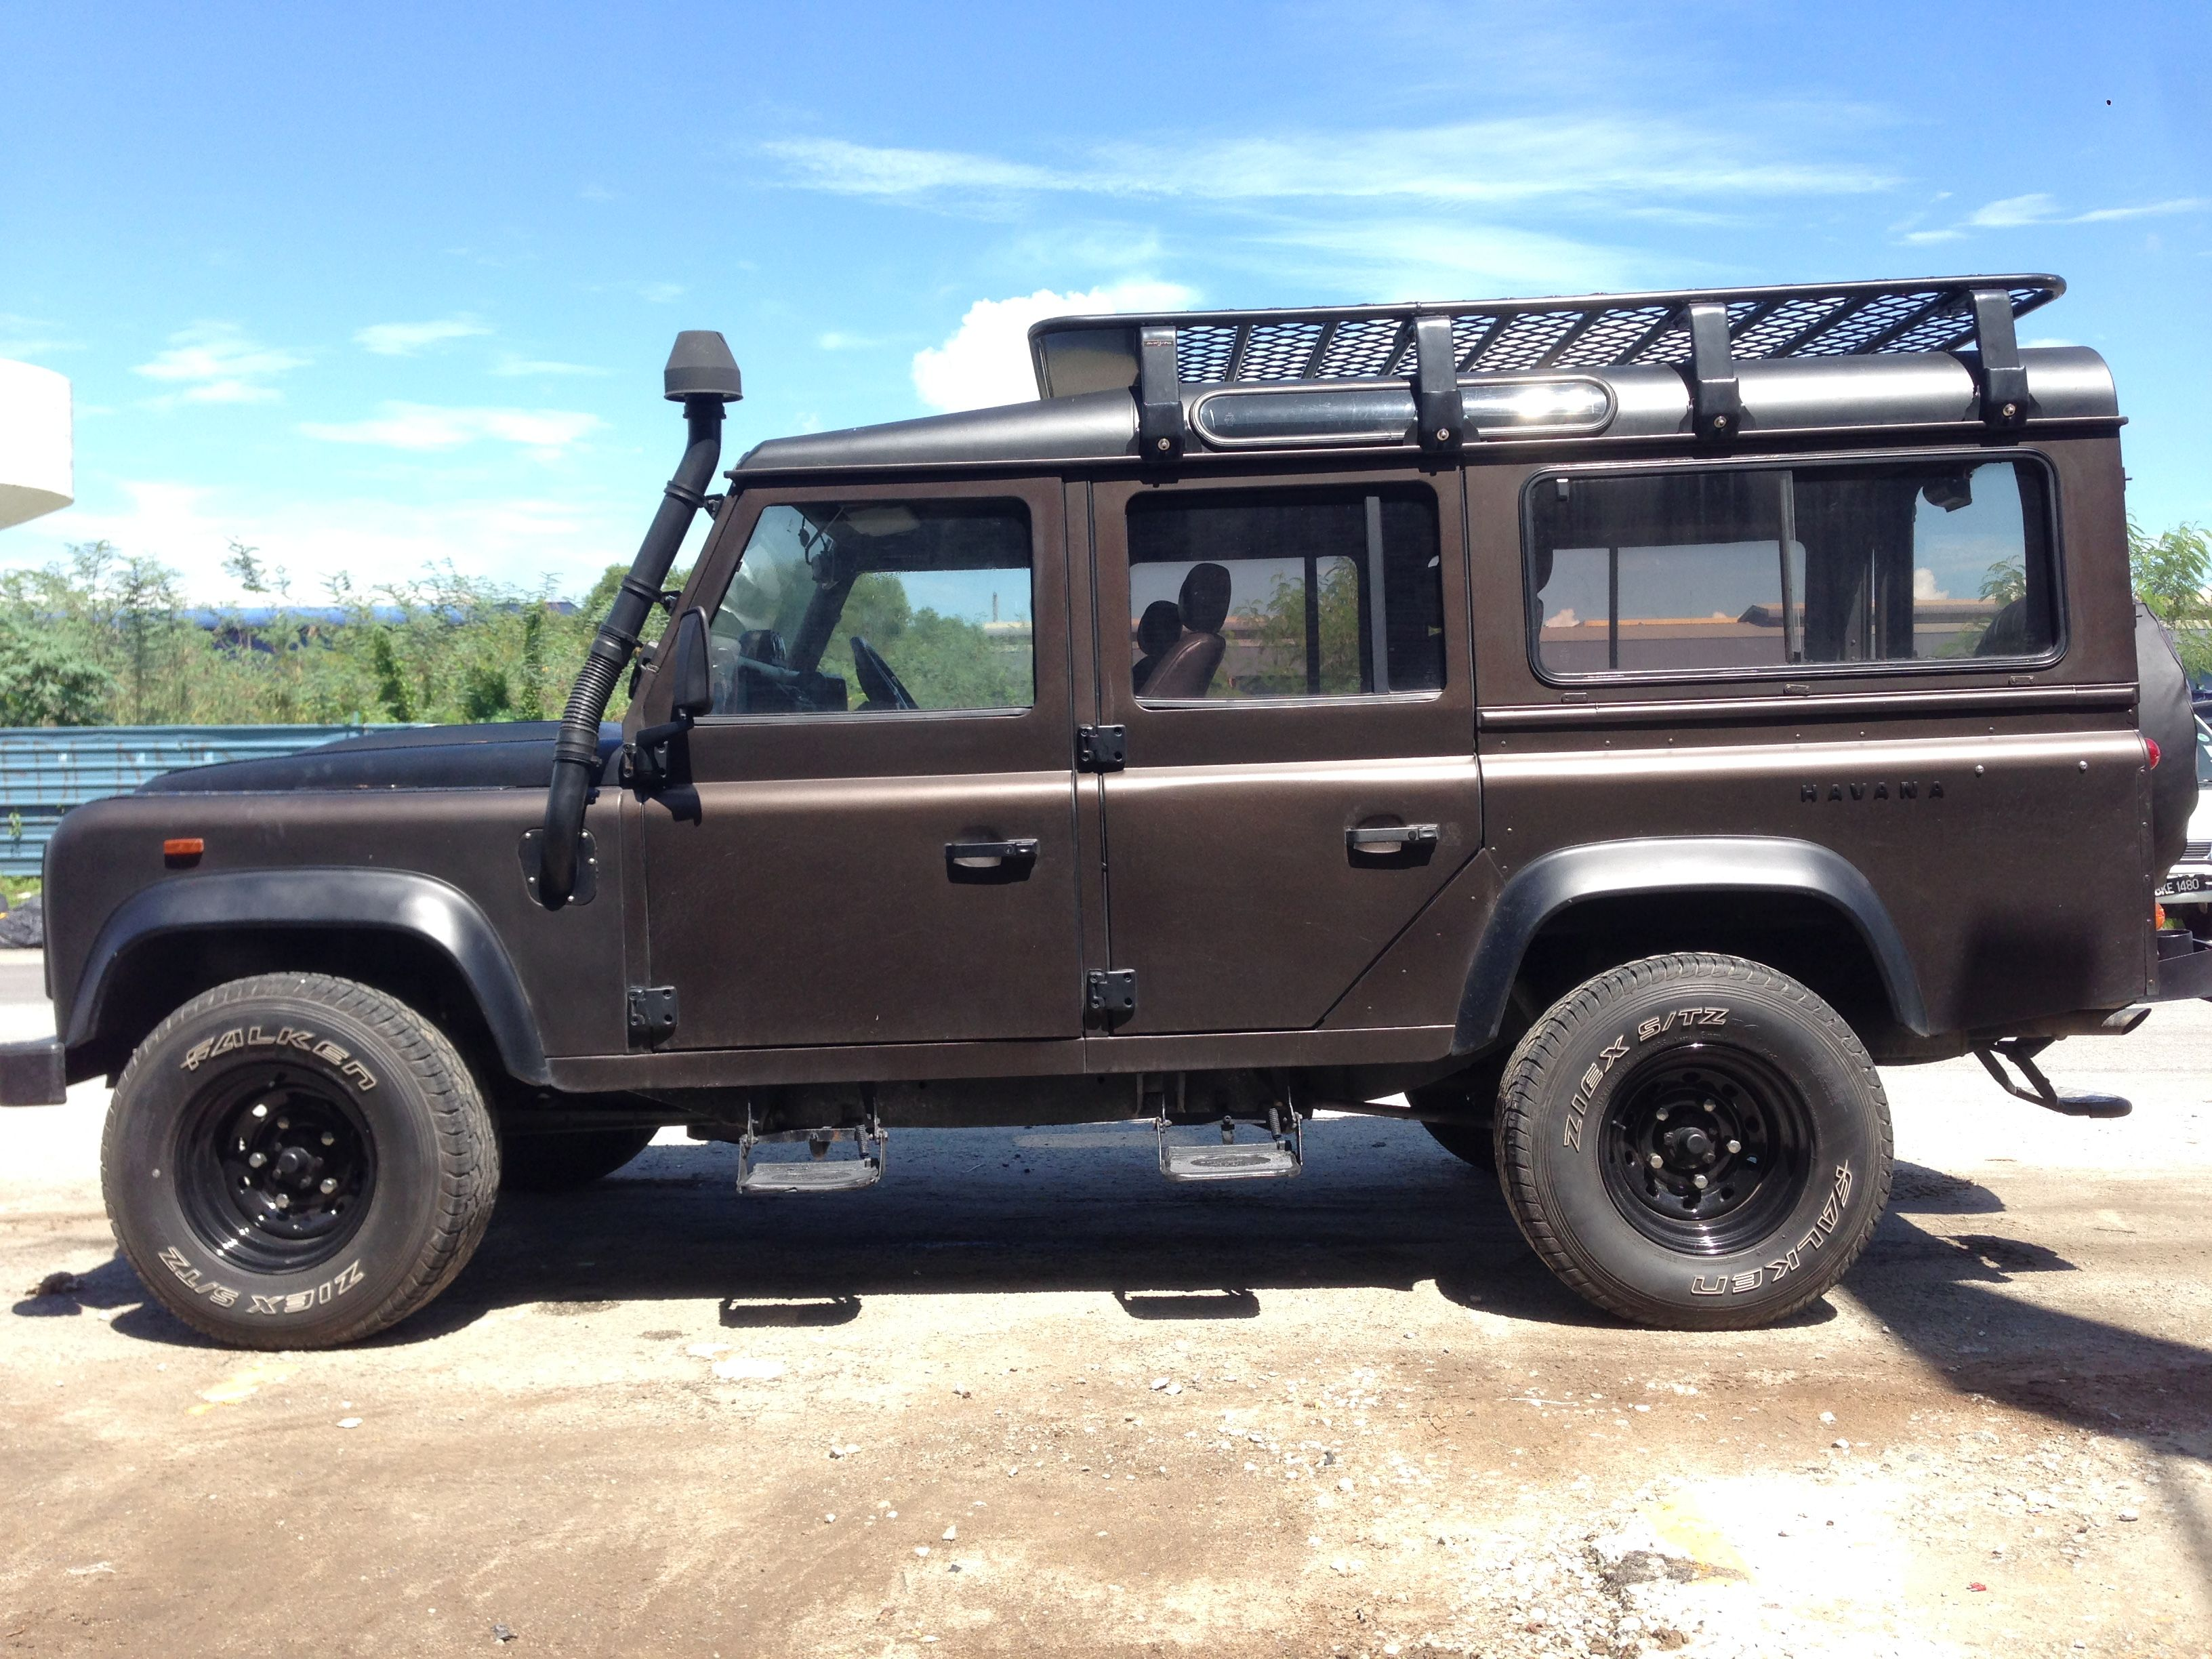 rovers landrover for sale landroverforsale tires defender land rover